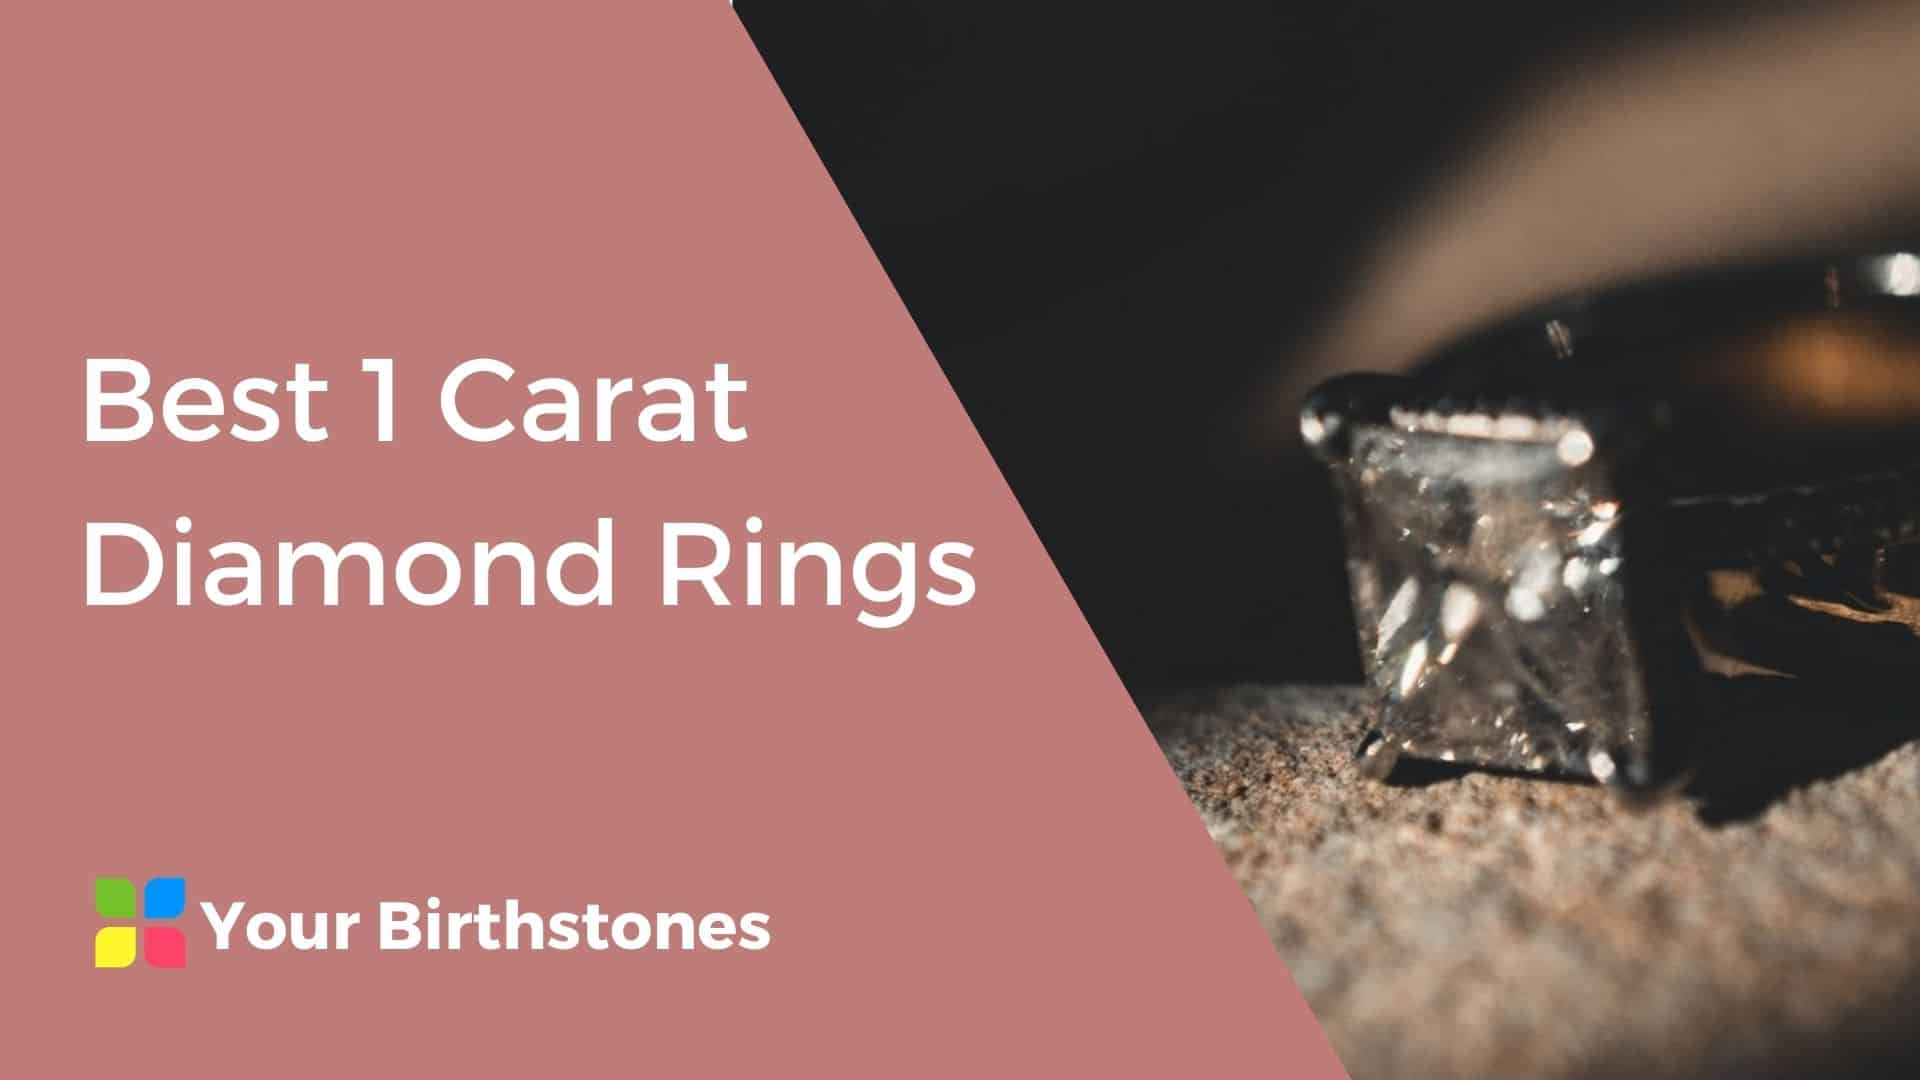 Best 1 Carat Diamond Rings